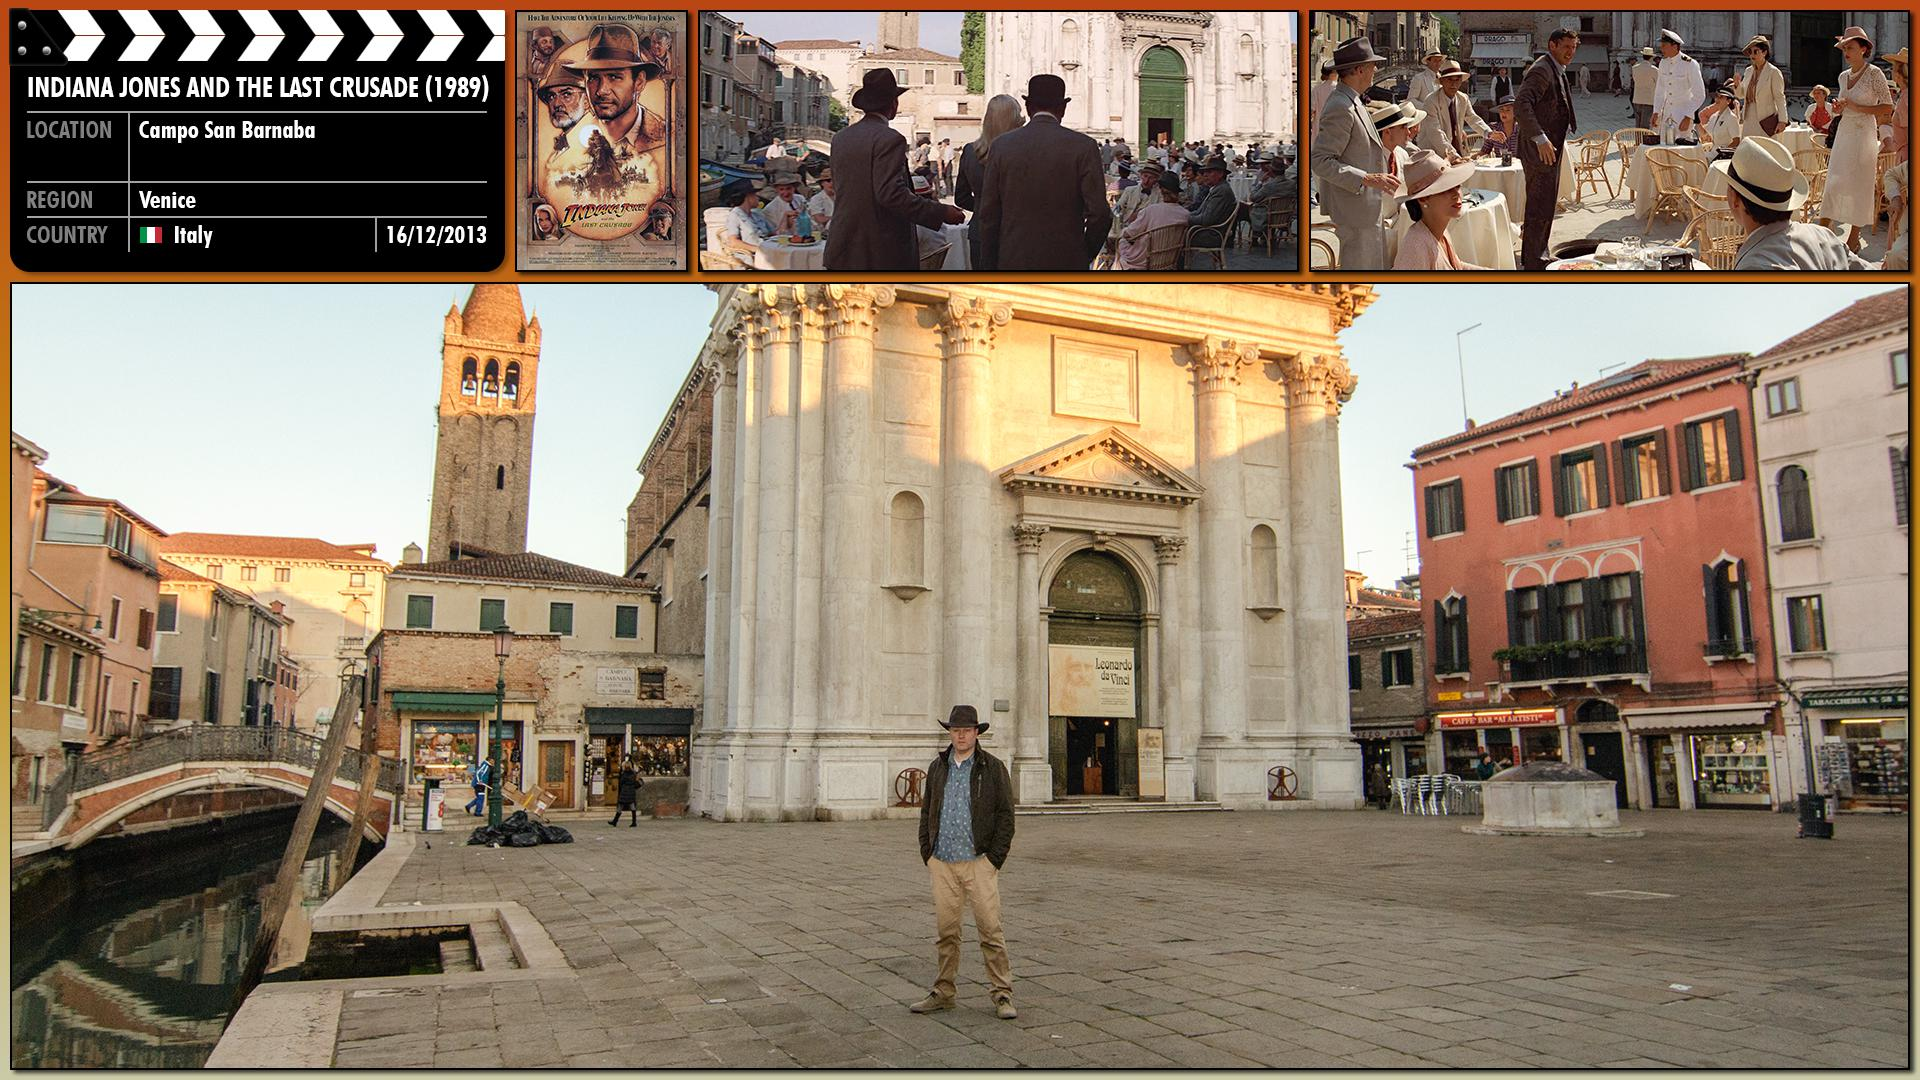 Filming location photo for Indiana Jones and the Last Crusade (1989) 8 of 9